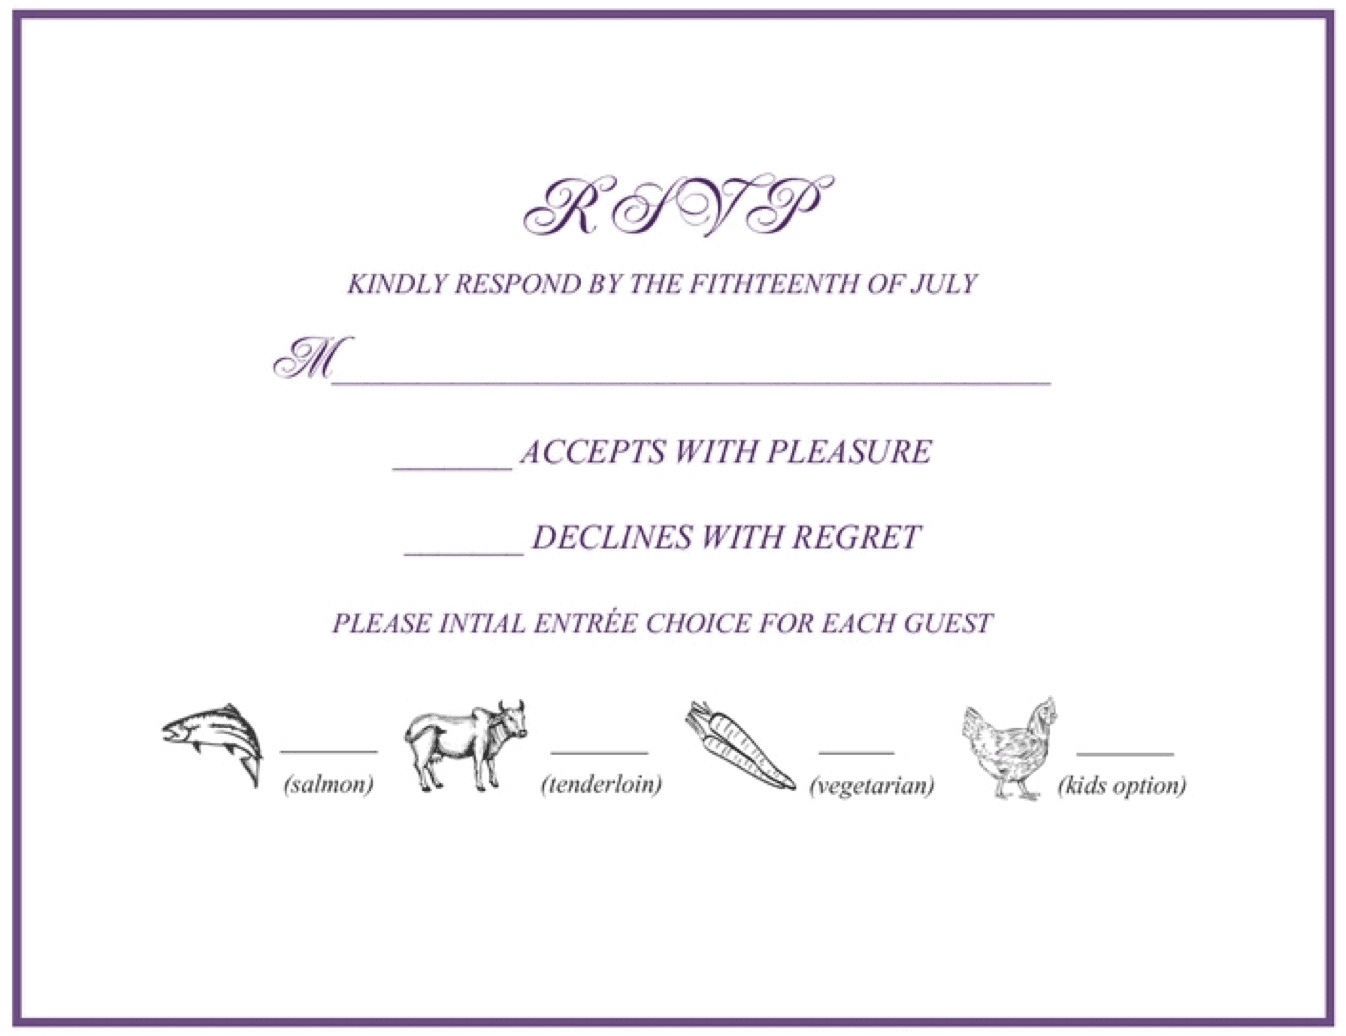 How To Fill Out A Wedding Rsvp.Rsvp 101 How To Rsvp To A Wedding Or Event Rsvpify